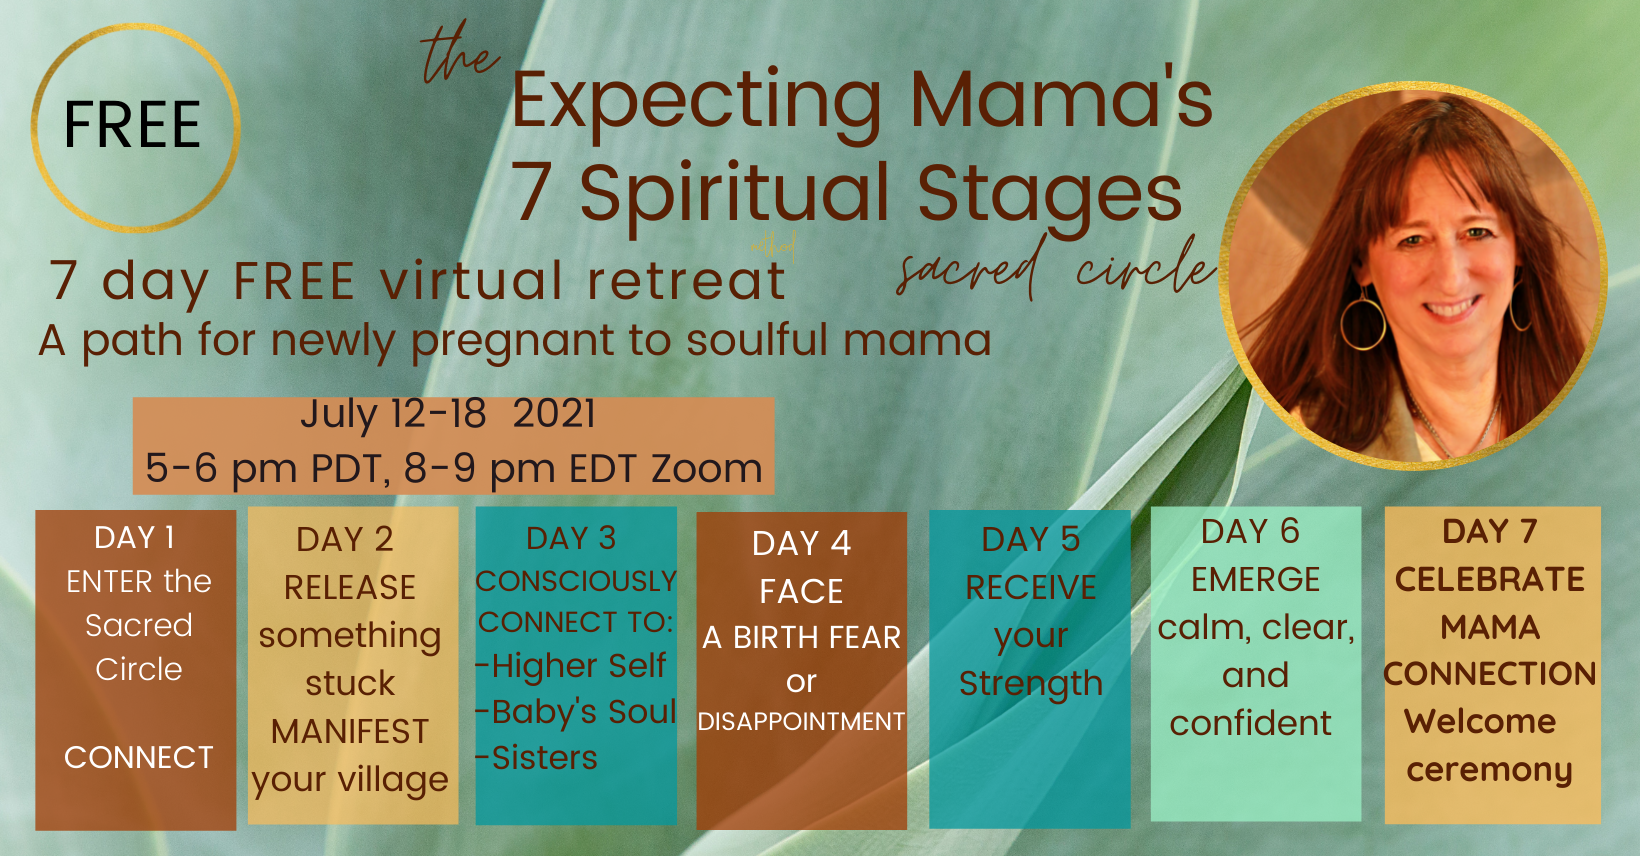 The Expecting Mama's 7 Spiritual Stages facebook group link